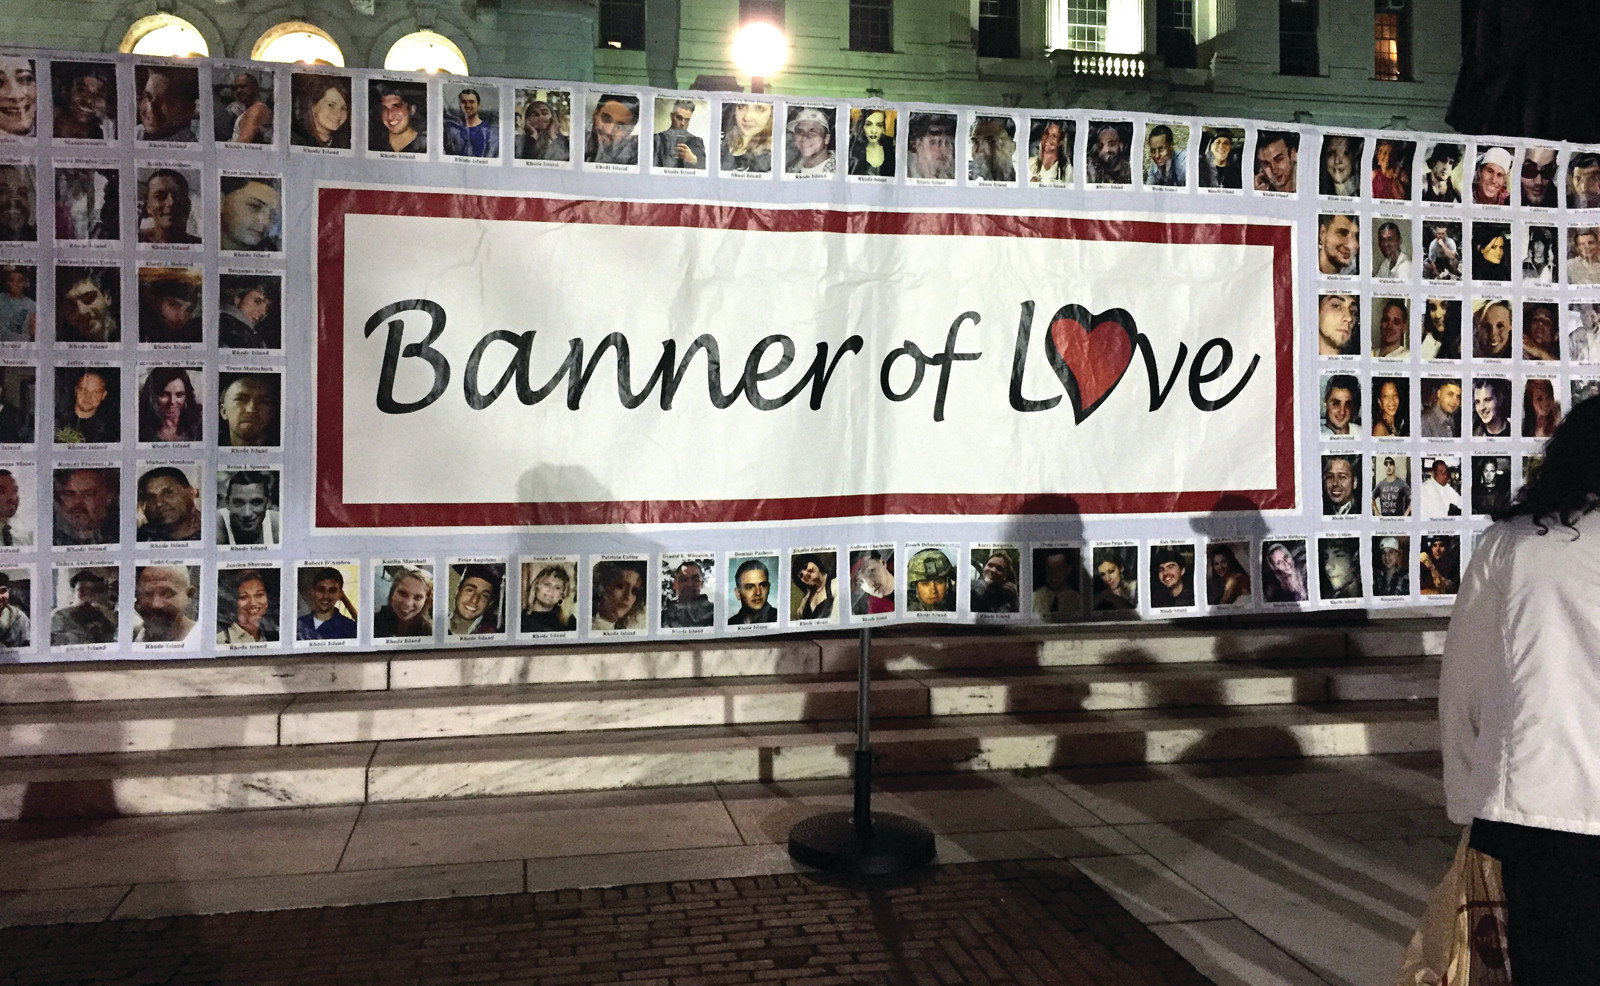 LOVE FROM ALL AROUND: The Banner of Love was raised on the steps of the State House in Providence on Thursday night, depicting pictures of those lost to overdose.